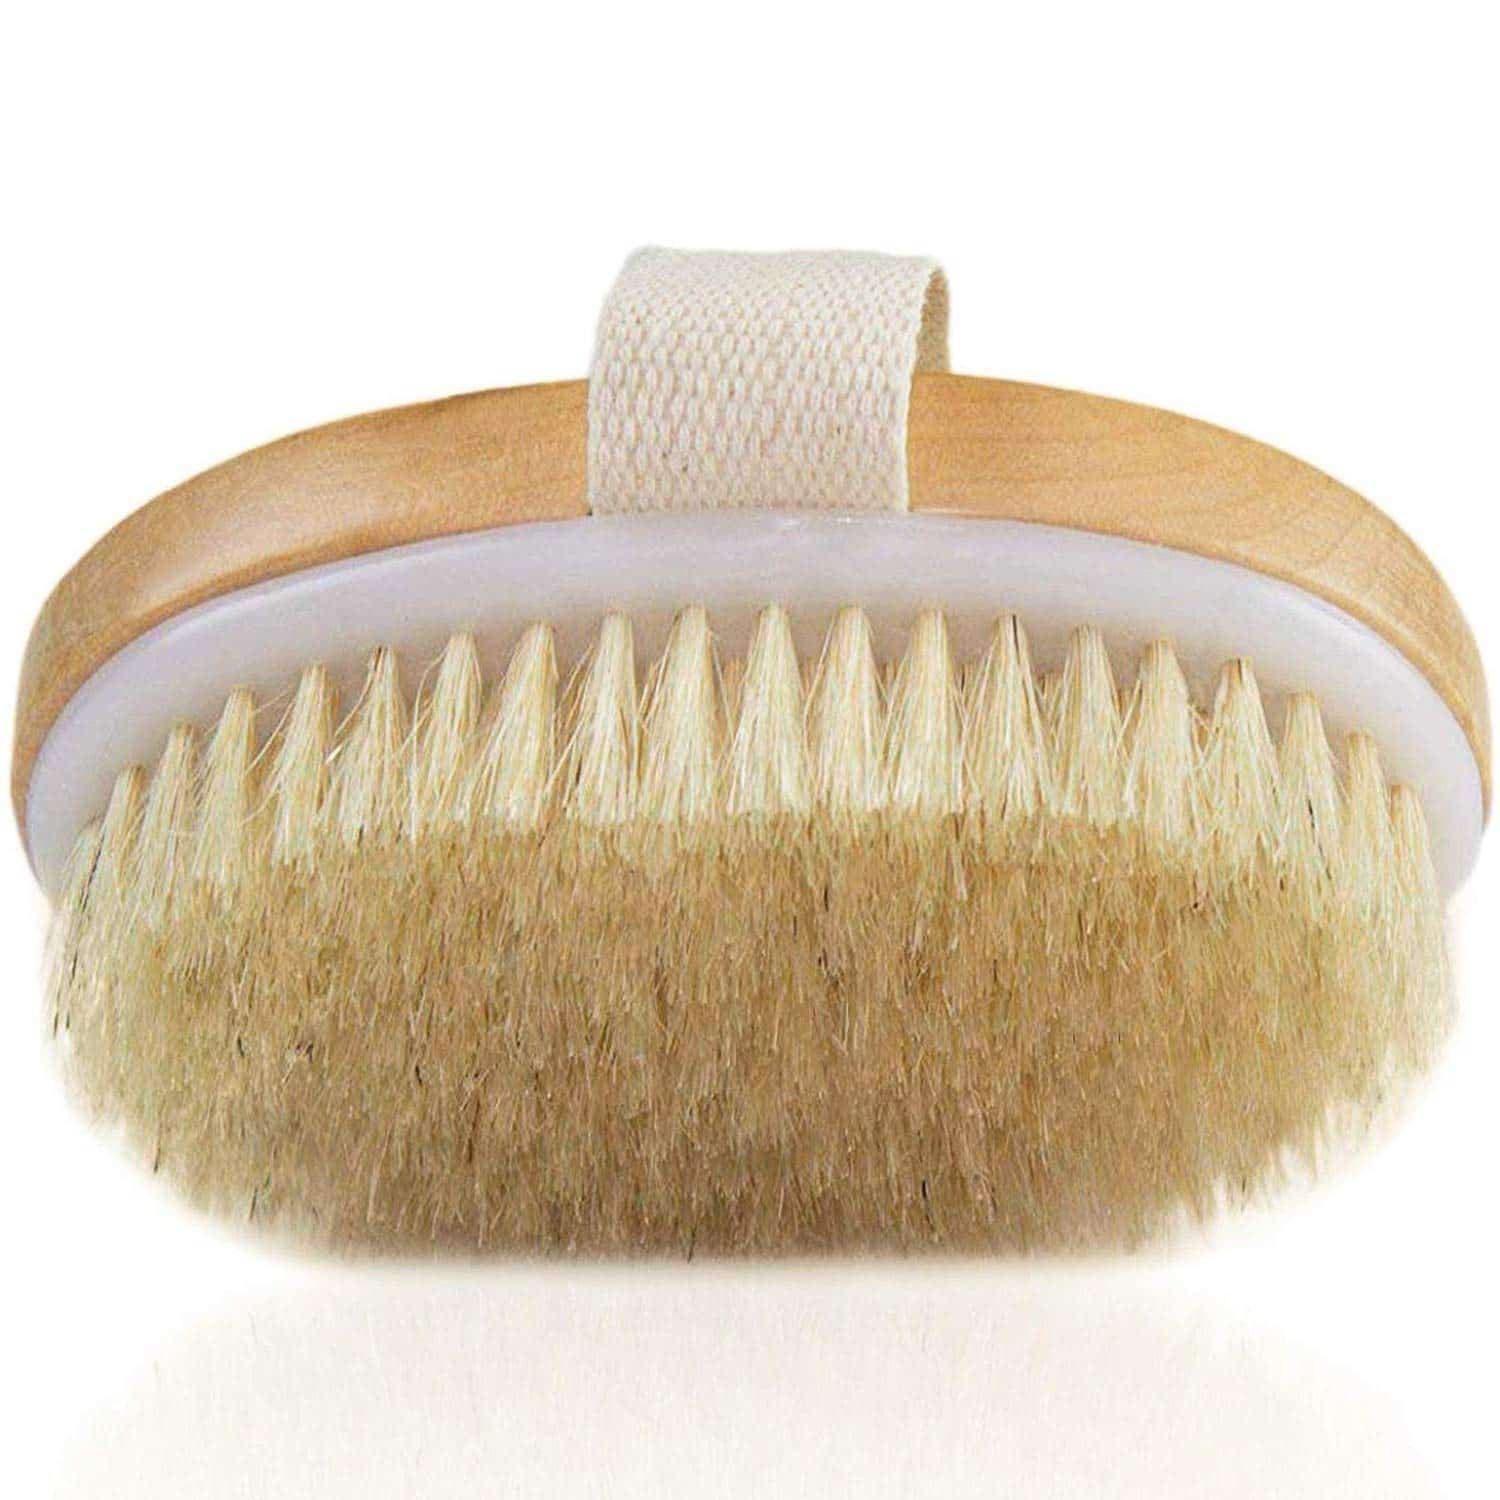 THEA Home Beauty Dry Brush for Body